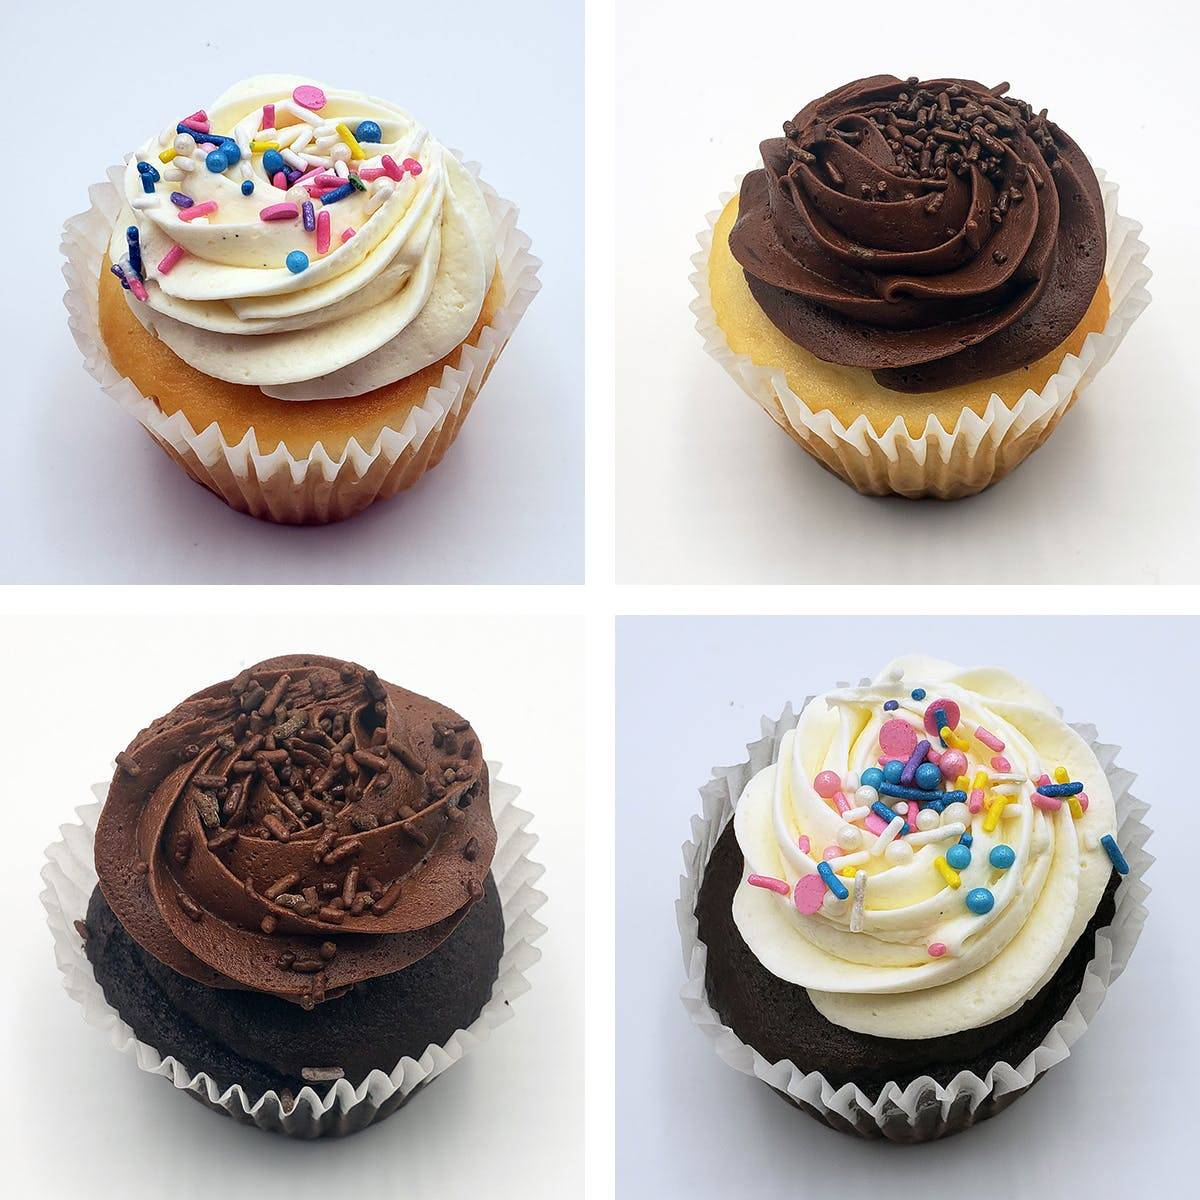 The Goddess and Grocer - Assorted Cupcakes - Choose Your Own 8 Pack